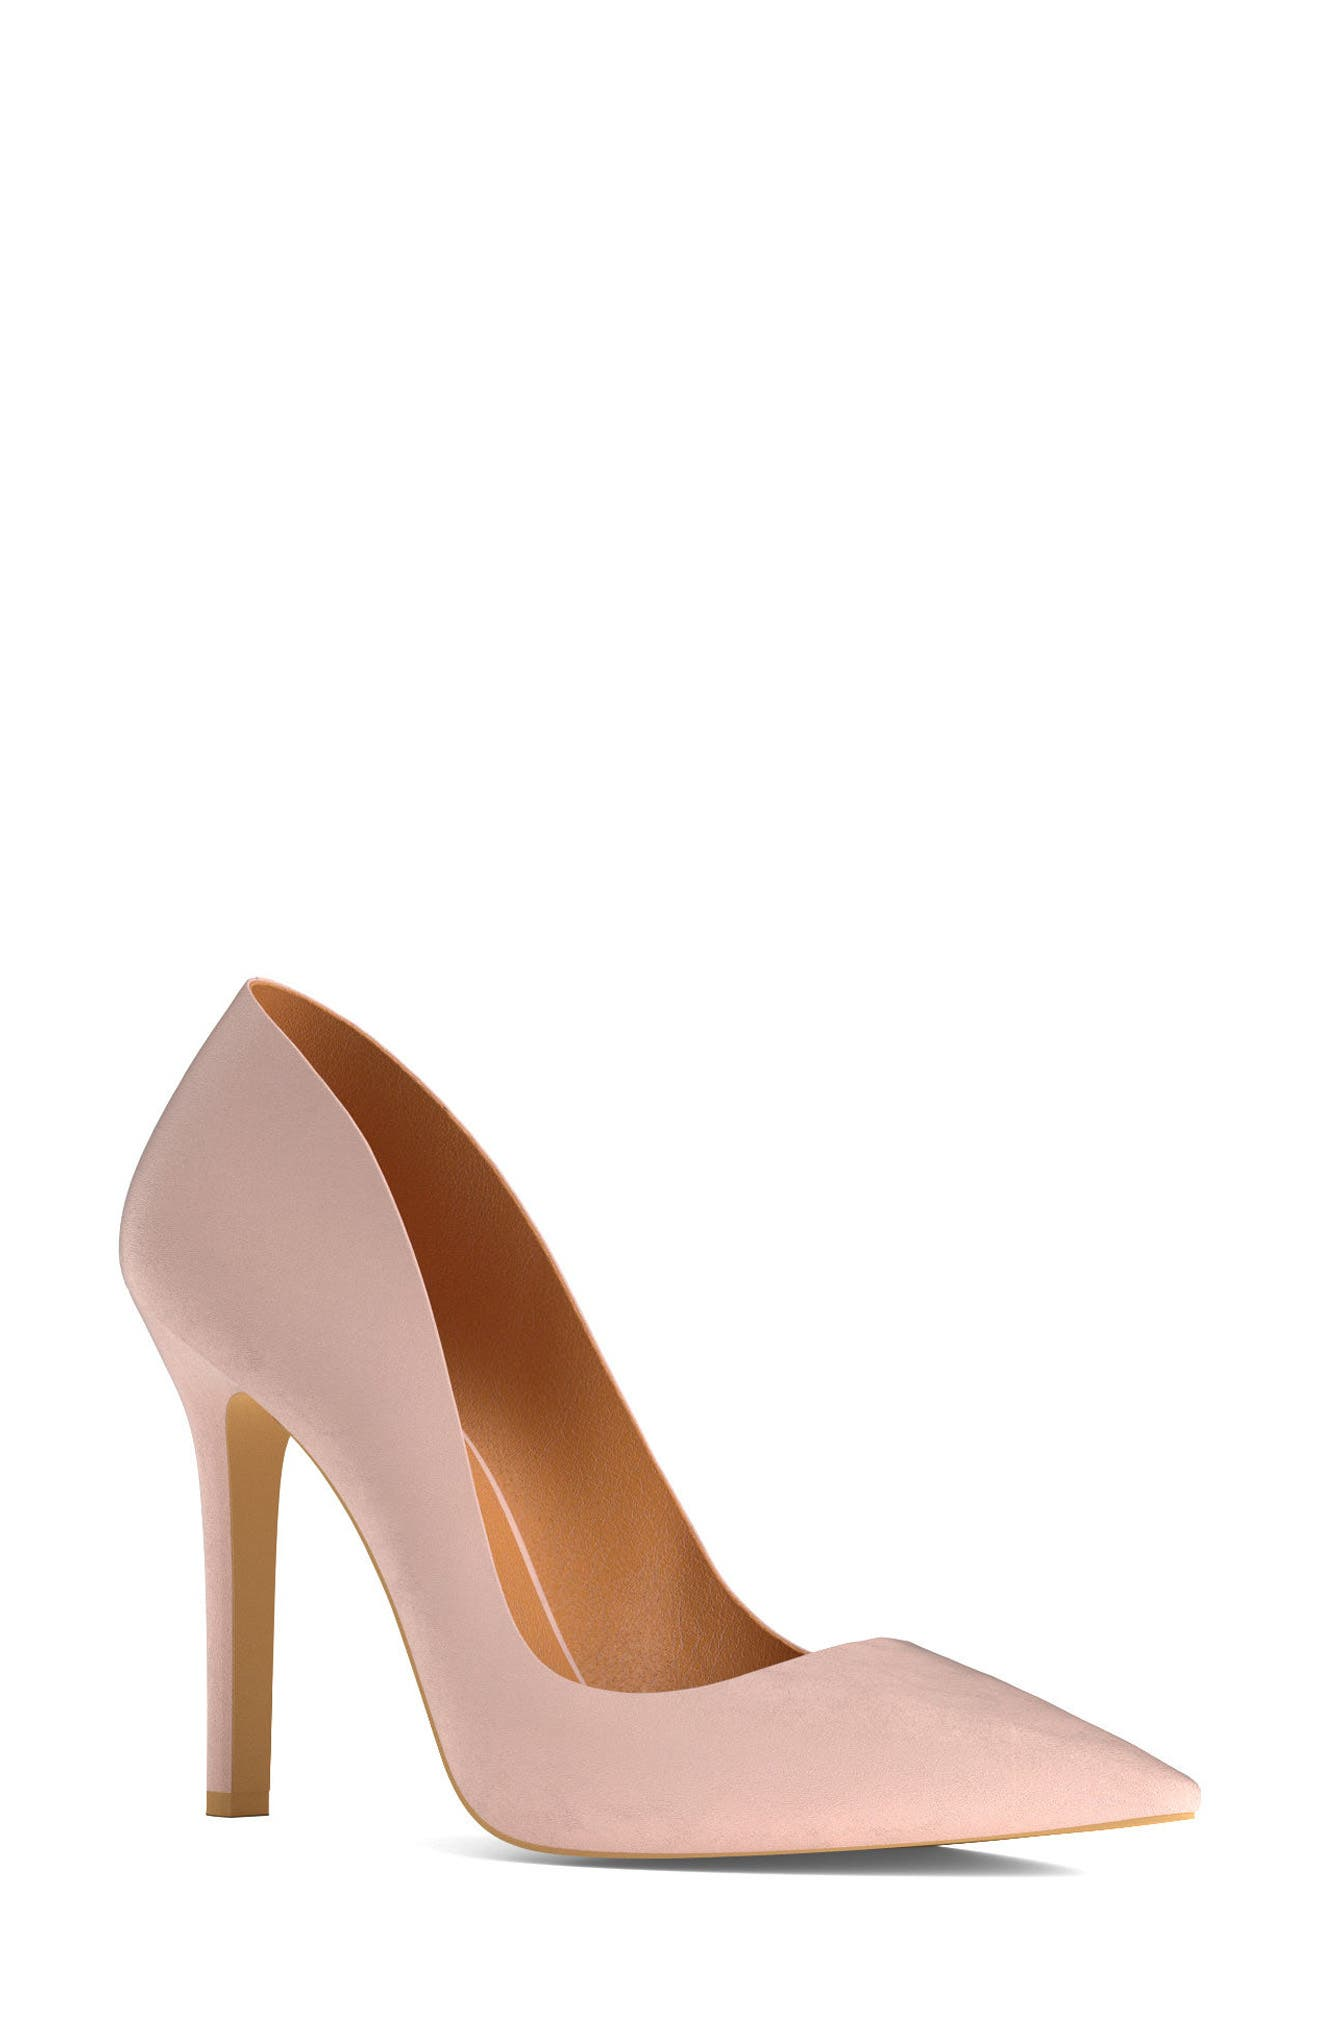 Pointy Toe Pump,                             Main thumbnail 1, color,                             Blush Nude Leather